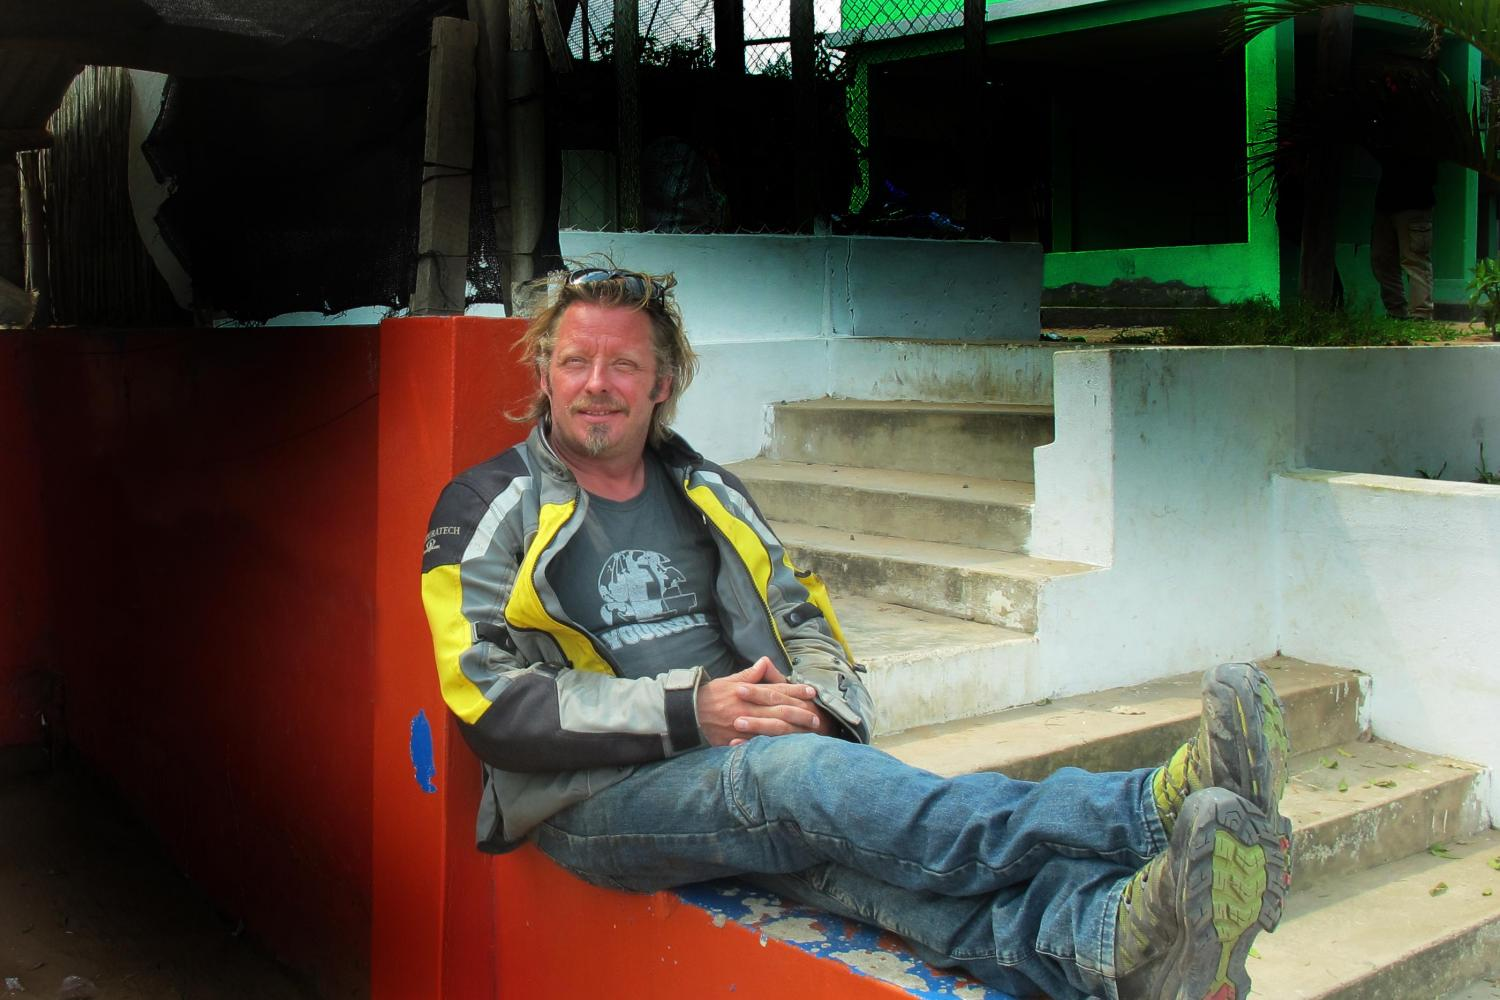 Charley Boorman Tasmania and the High Country